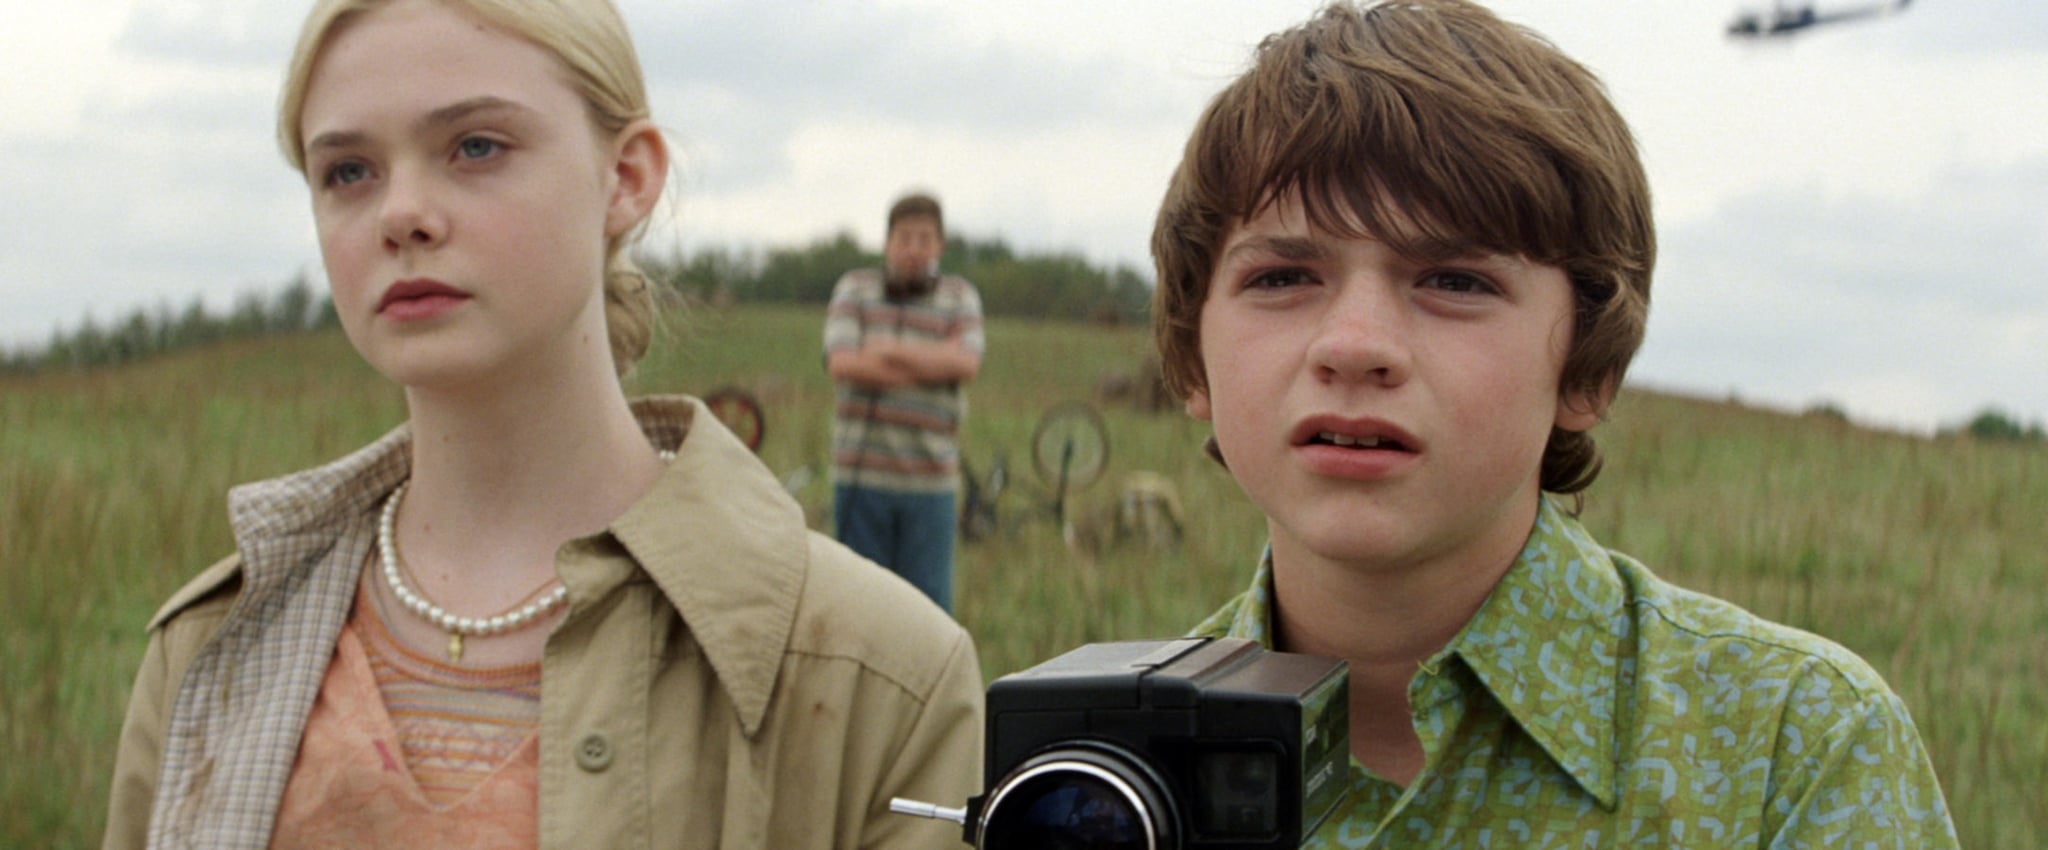 SUPER 8, from left: Elle Fanning, Joel Courtney, 2011, ph: Francois Duhamel/Paramount Pictures/courtesy Everett Collection